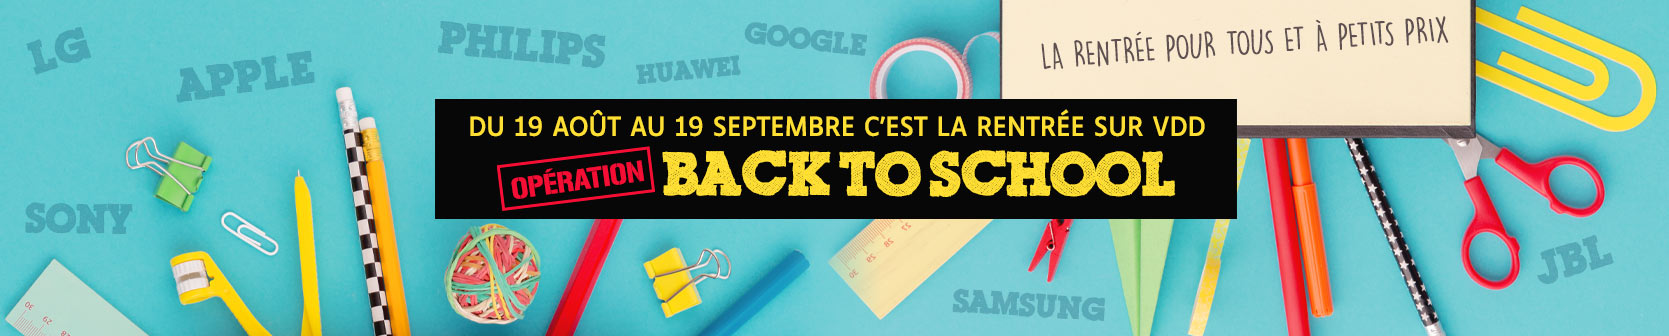 Back To School 2019 : La Rentrée High-Tech avec Vente du Diable !